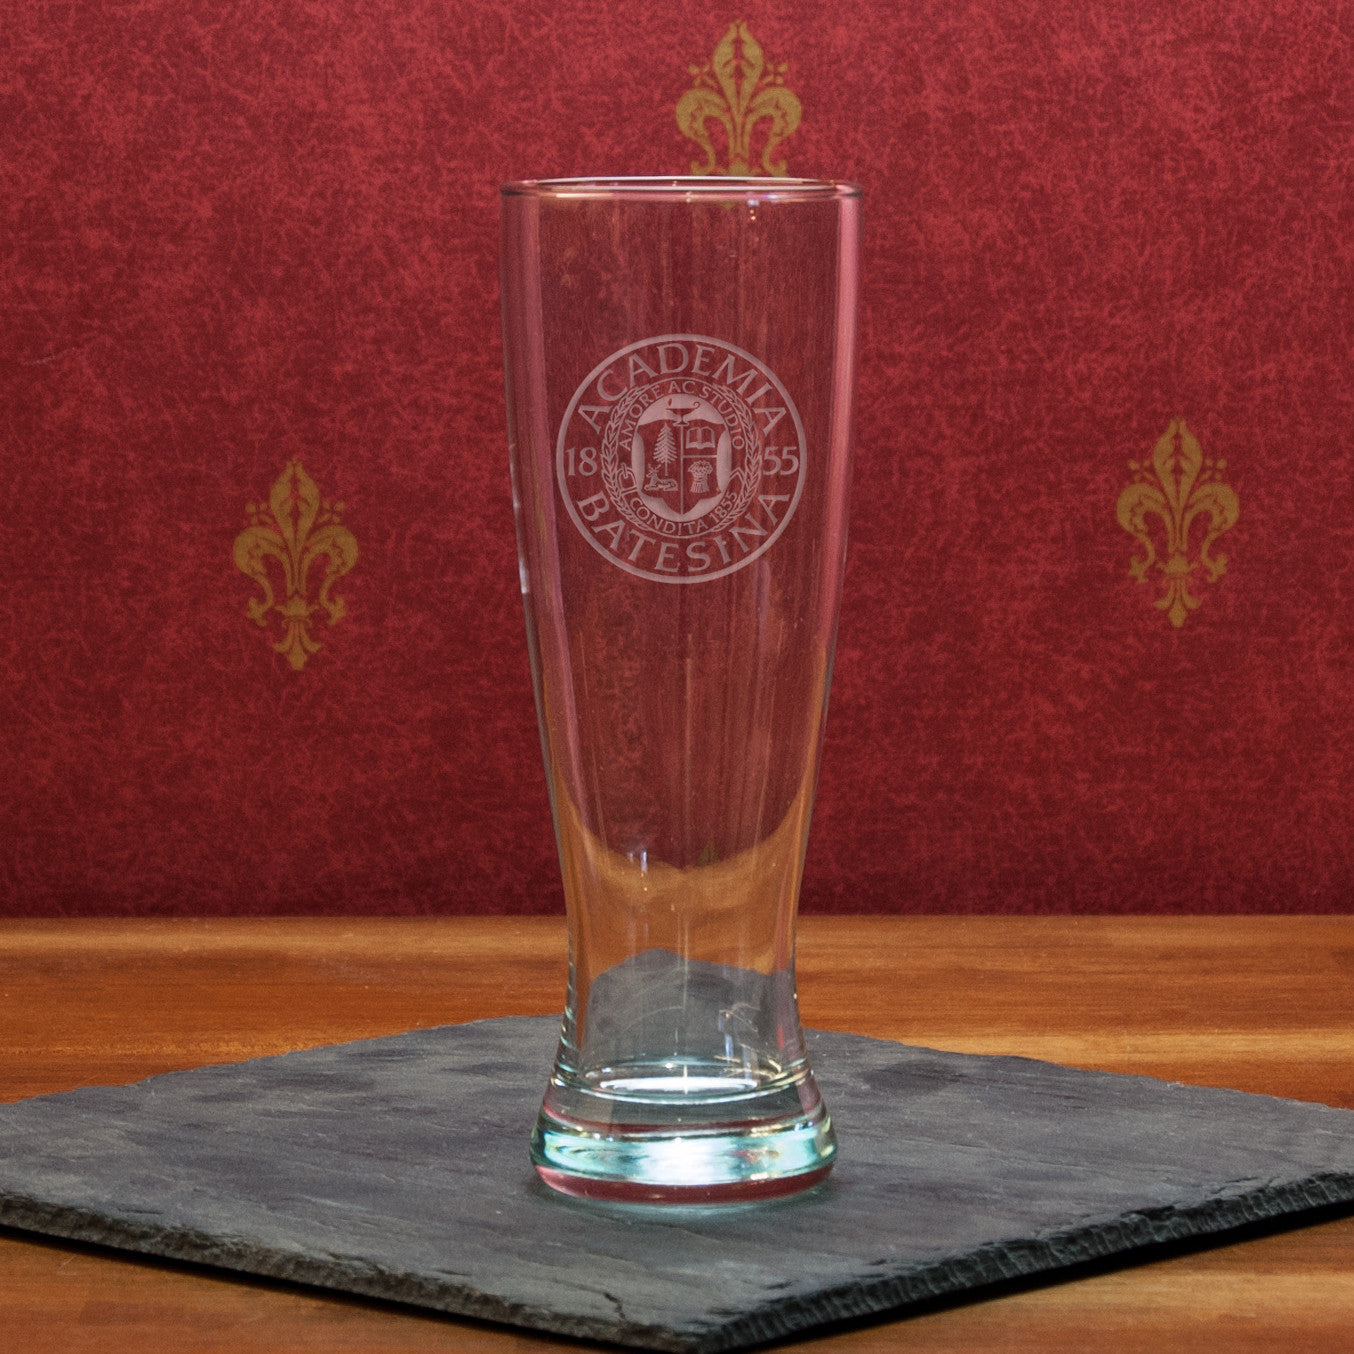 23oz University Pilsner Glass - Commencement, Gifts, Glassware